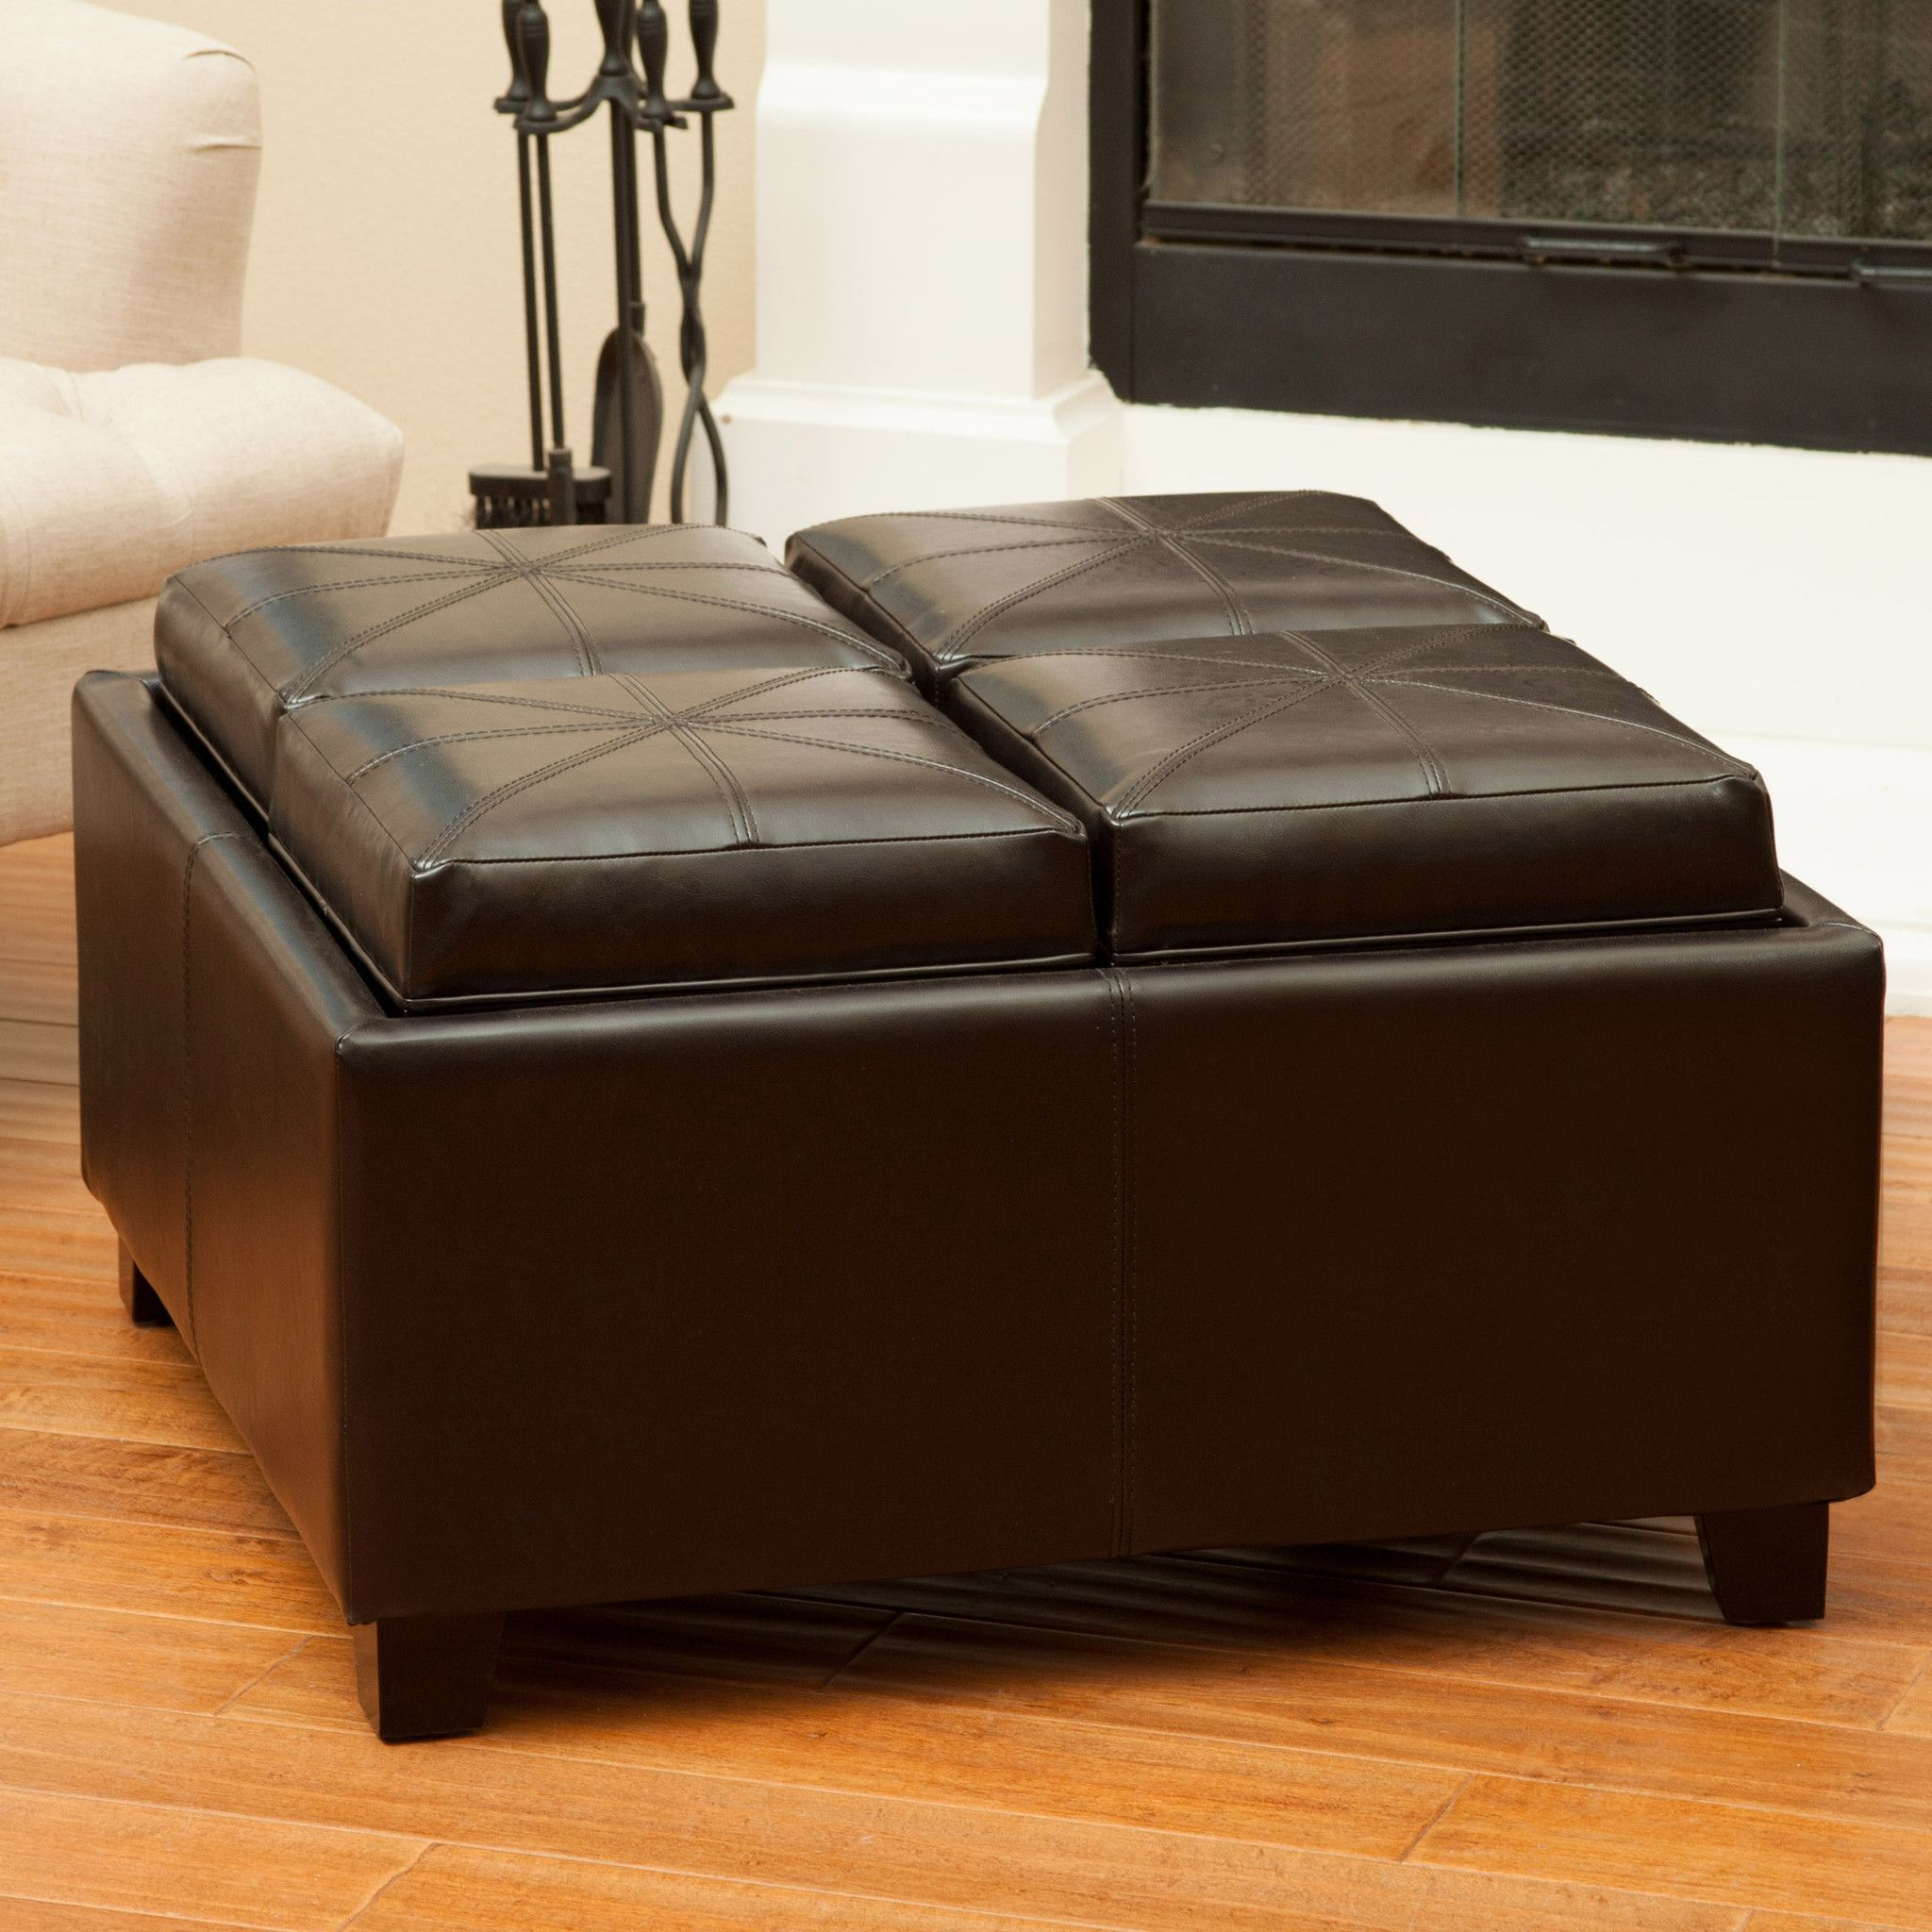 Lonnie 4TrayTop Ottoman Coffee Table w StorageProducts